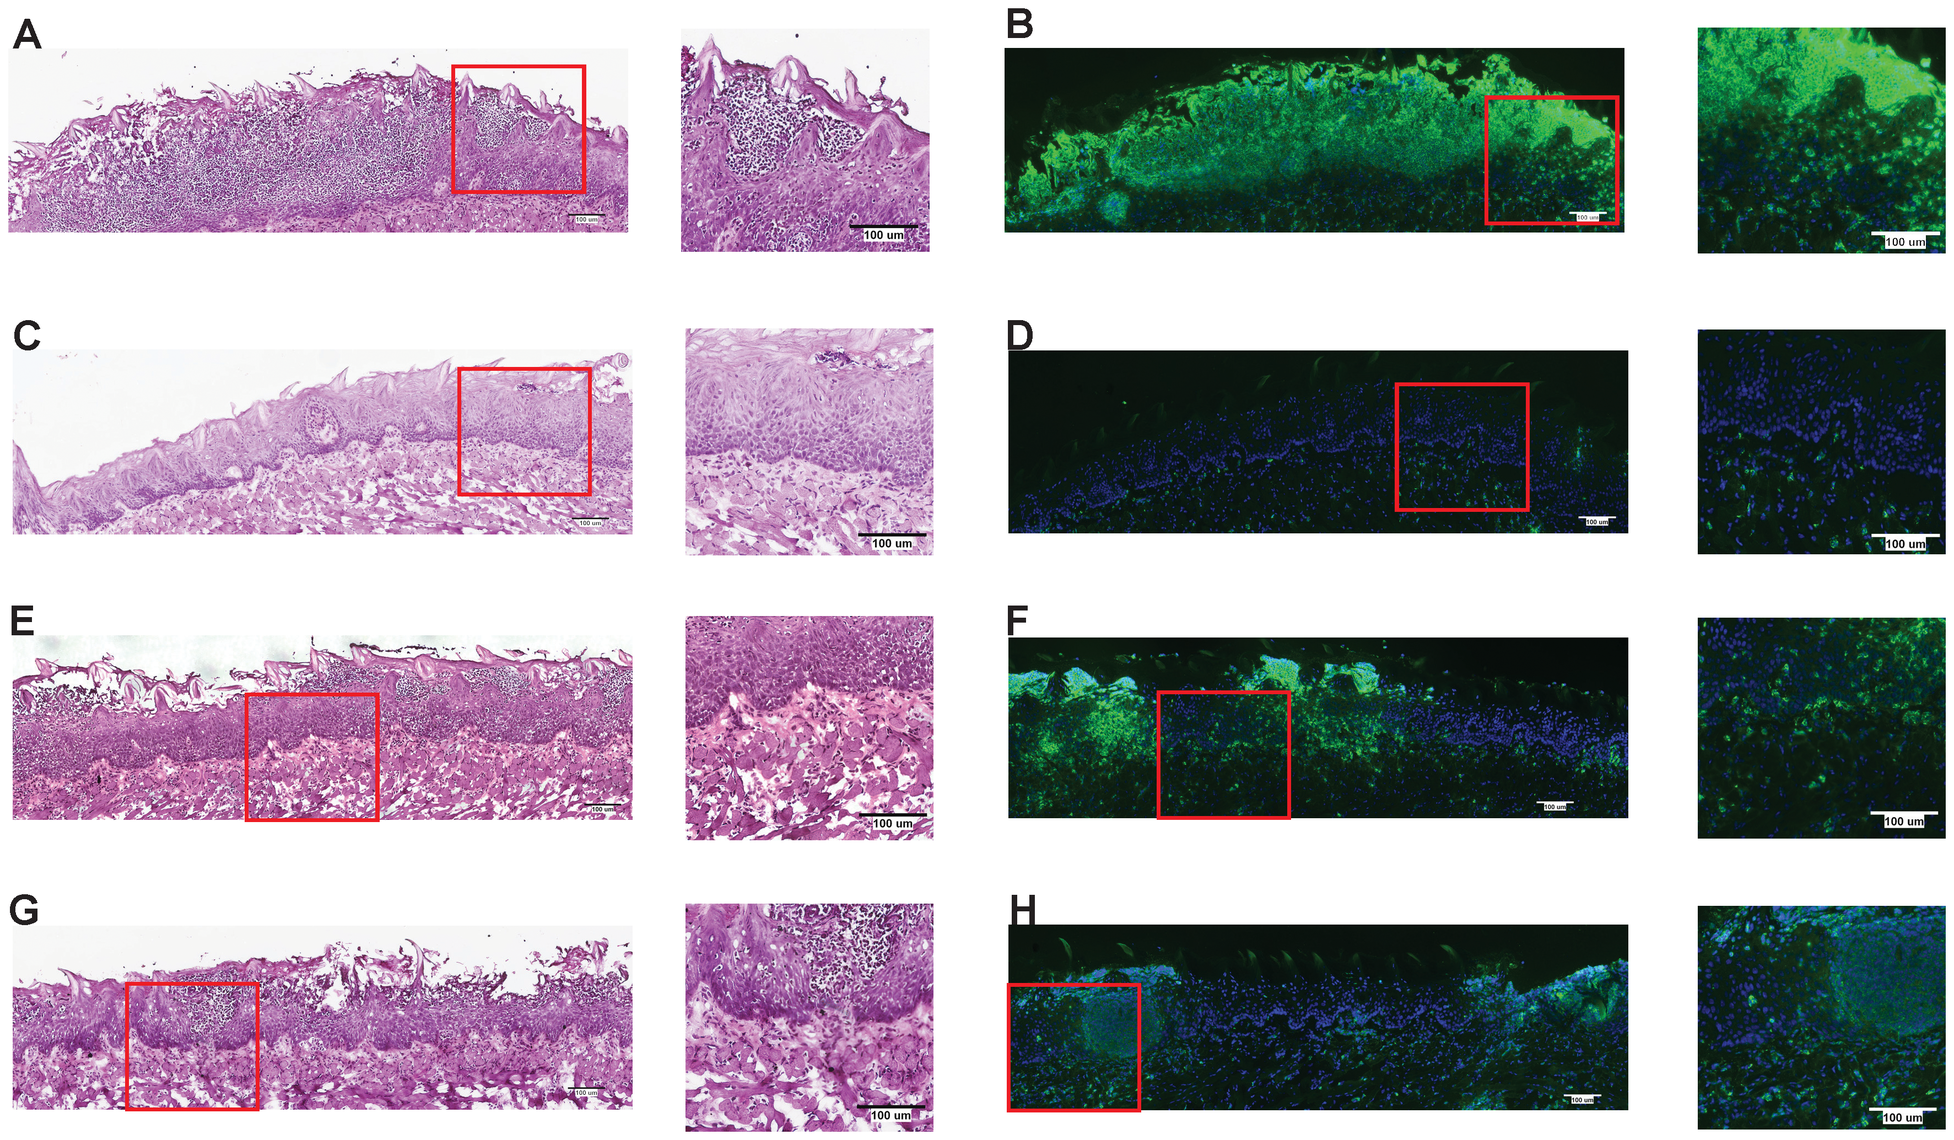 NLRC4 inflammasome mediates neutrophil influx response to mucosal <i>Candida</i> infection.